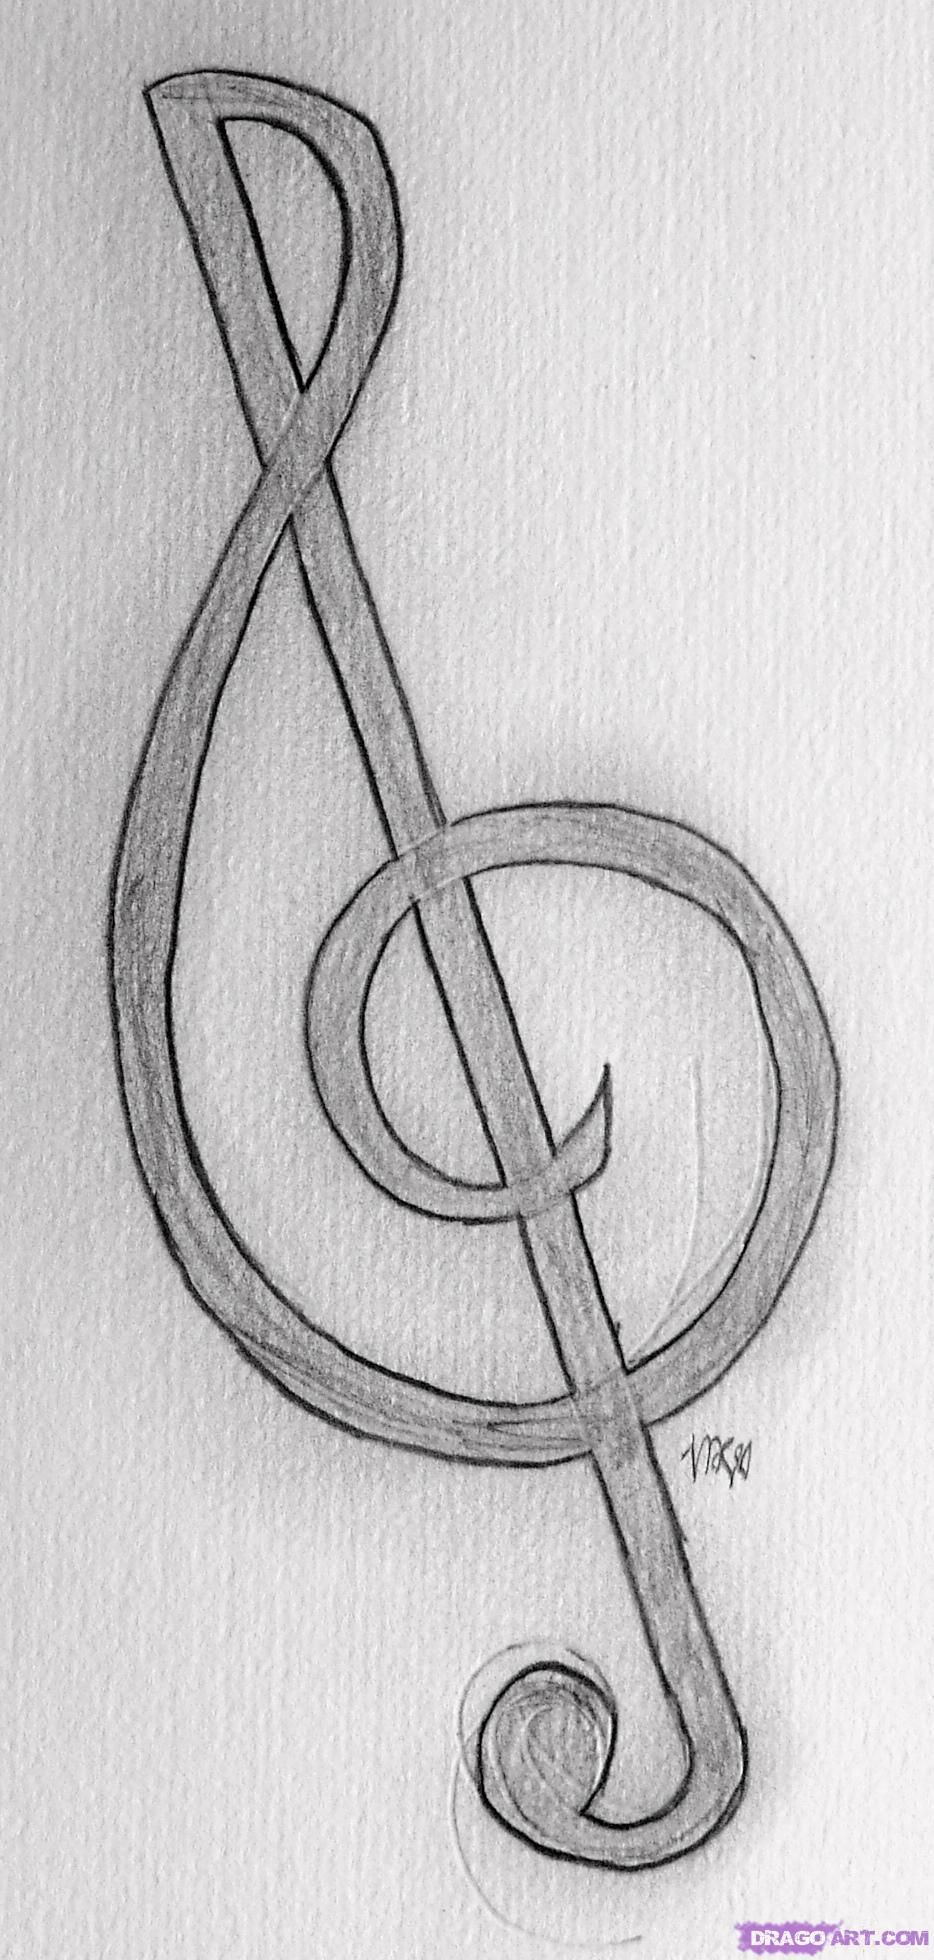 Easy To Draw Music Notes : music, notes, Treble, Clef,, Step,, Notes,, Musical, Instruments,, Online, Drawing, Tutorial,, Added, Music, Notes, Drawing,, Drawings,